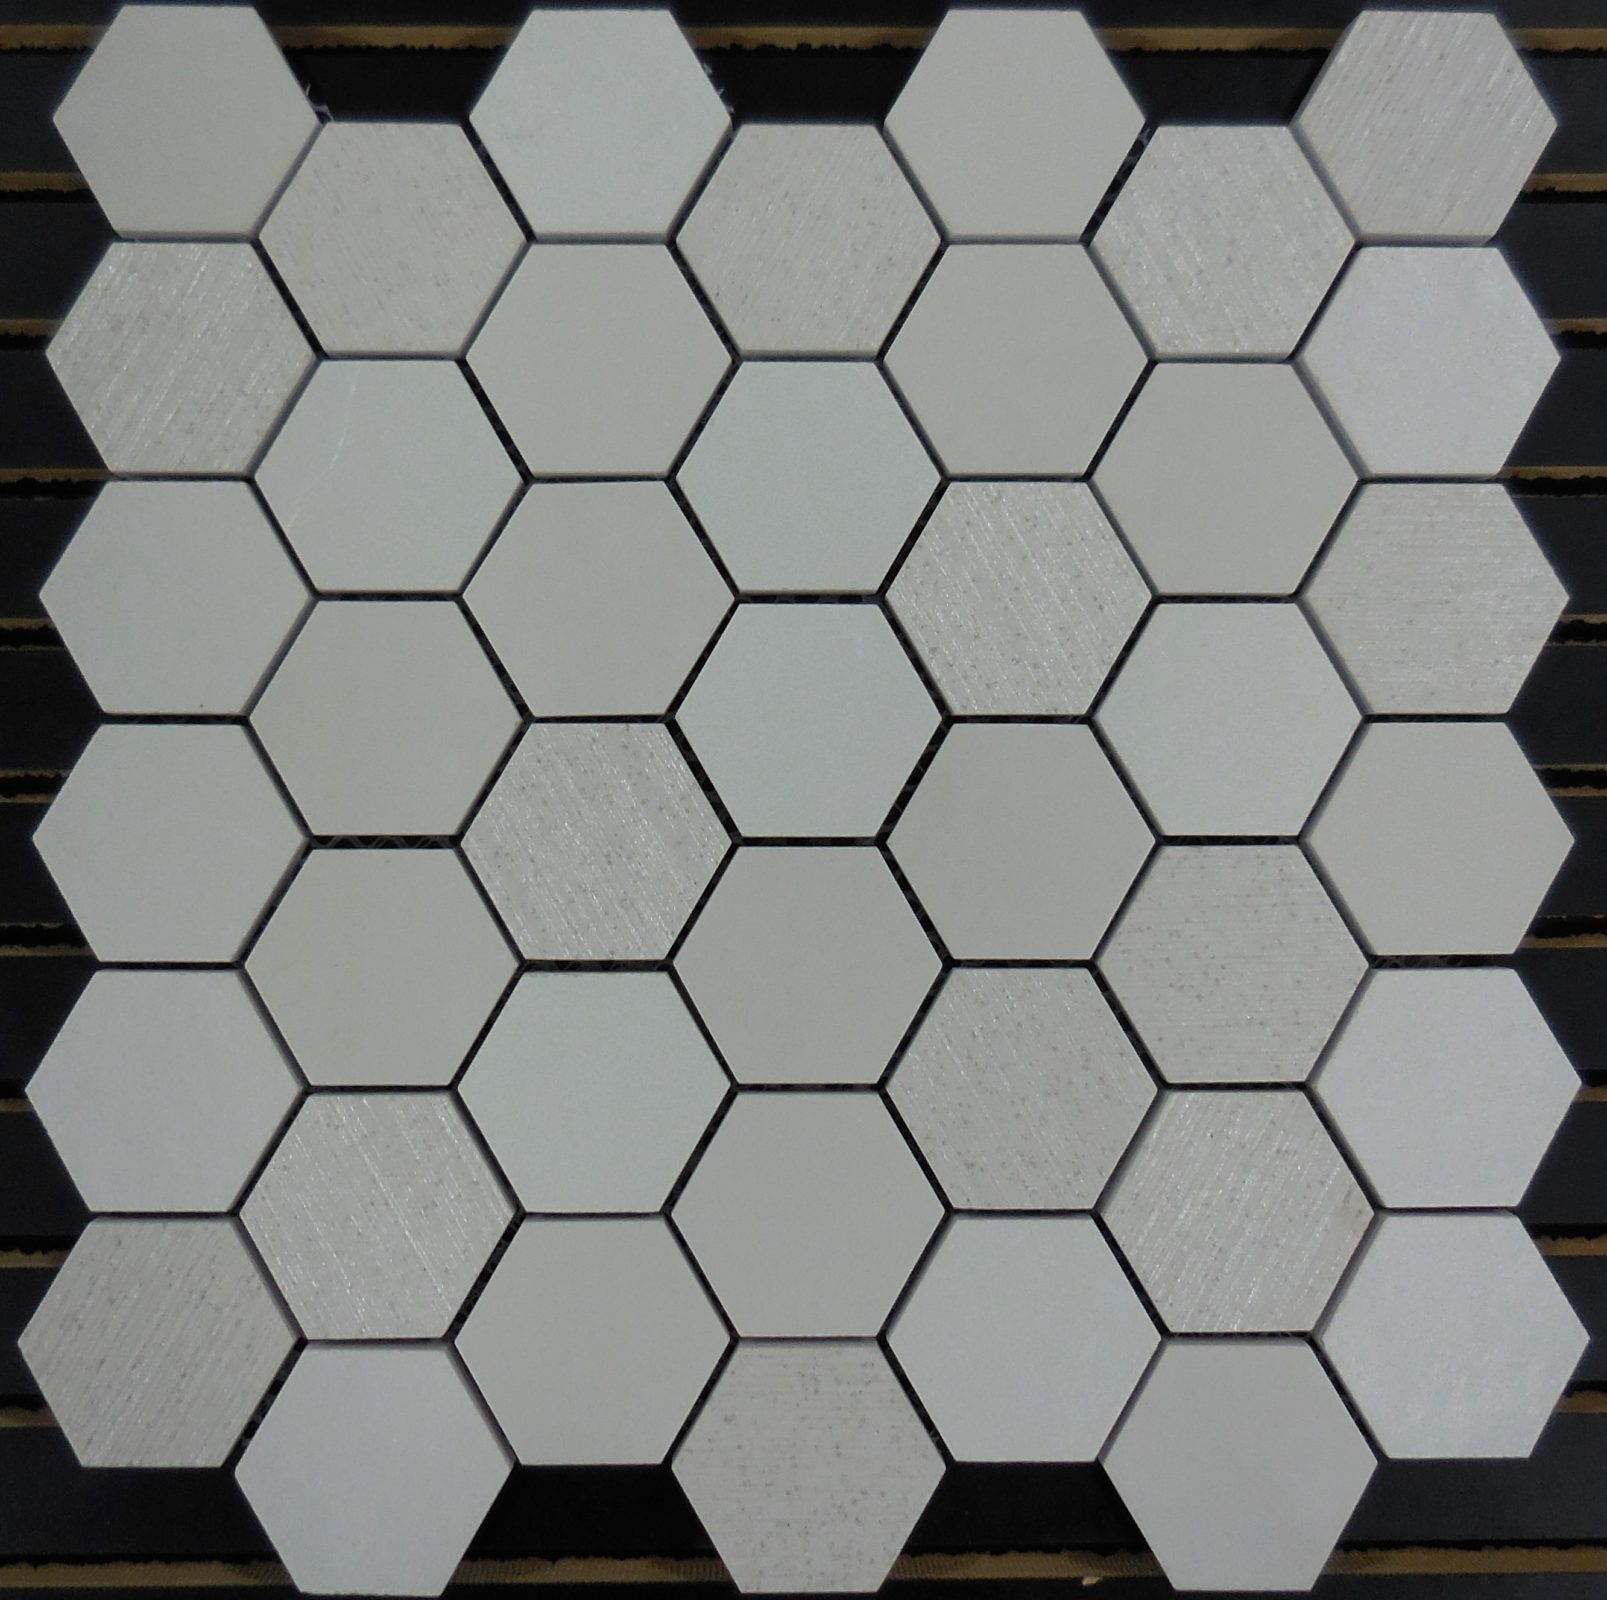 pth5015-porcelain-mosaic-by-glass-tile-and-stone